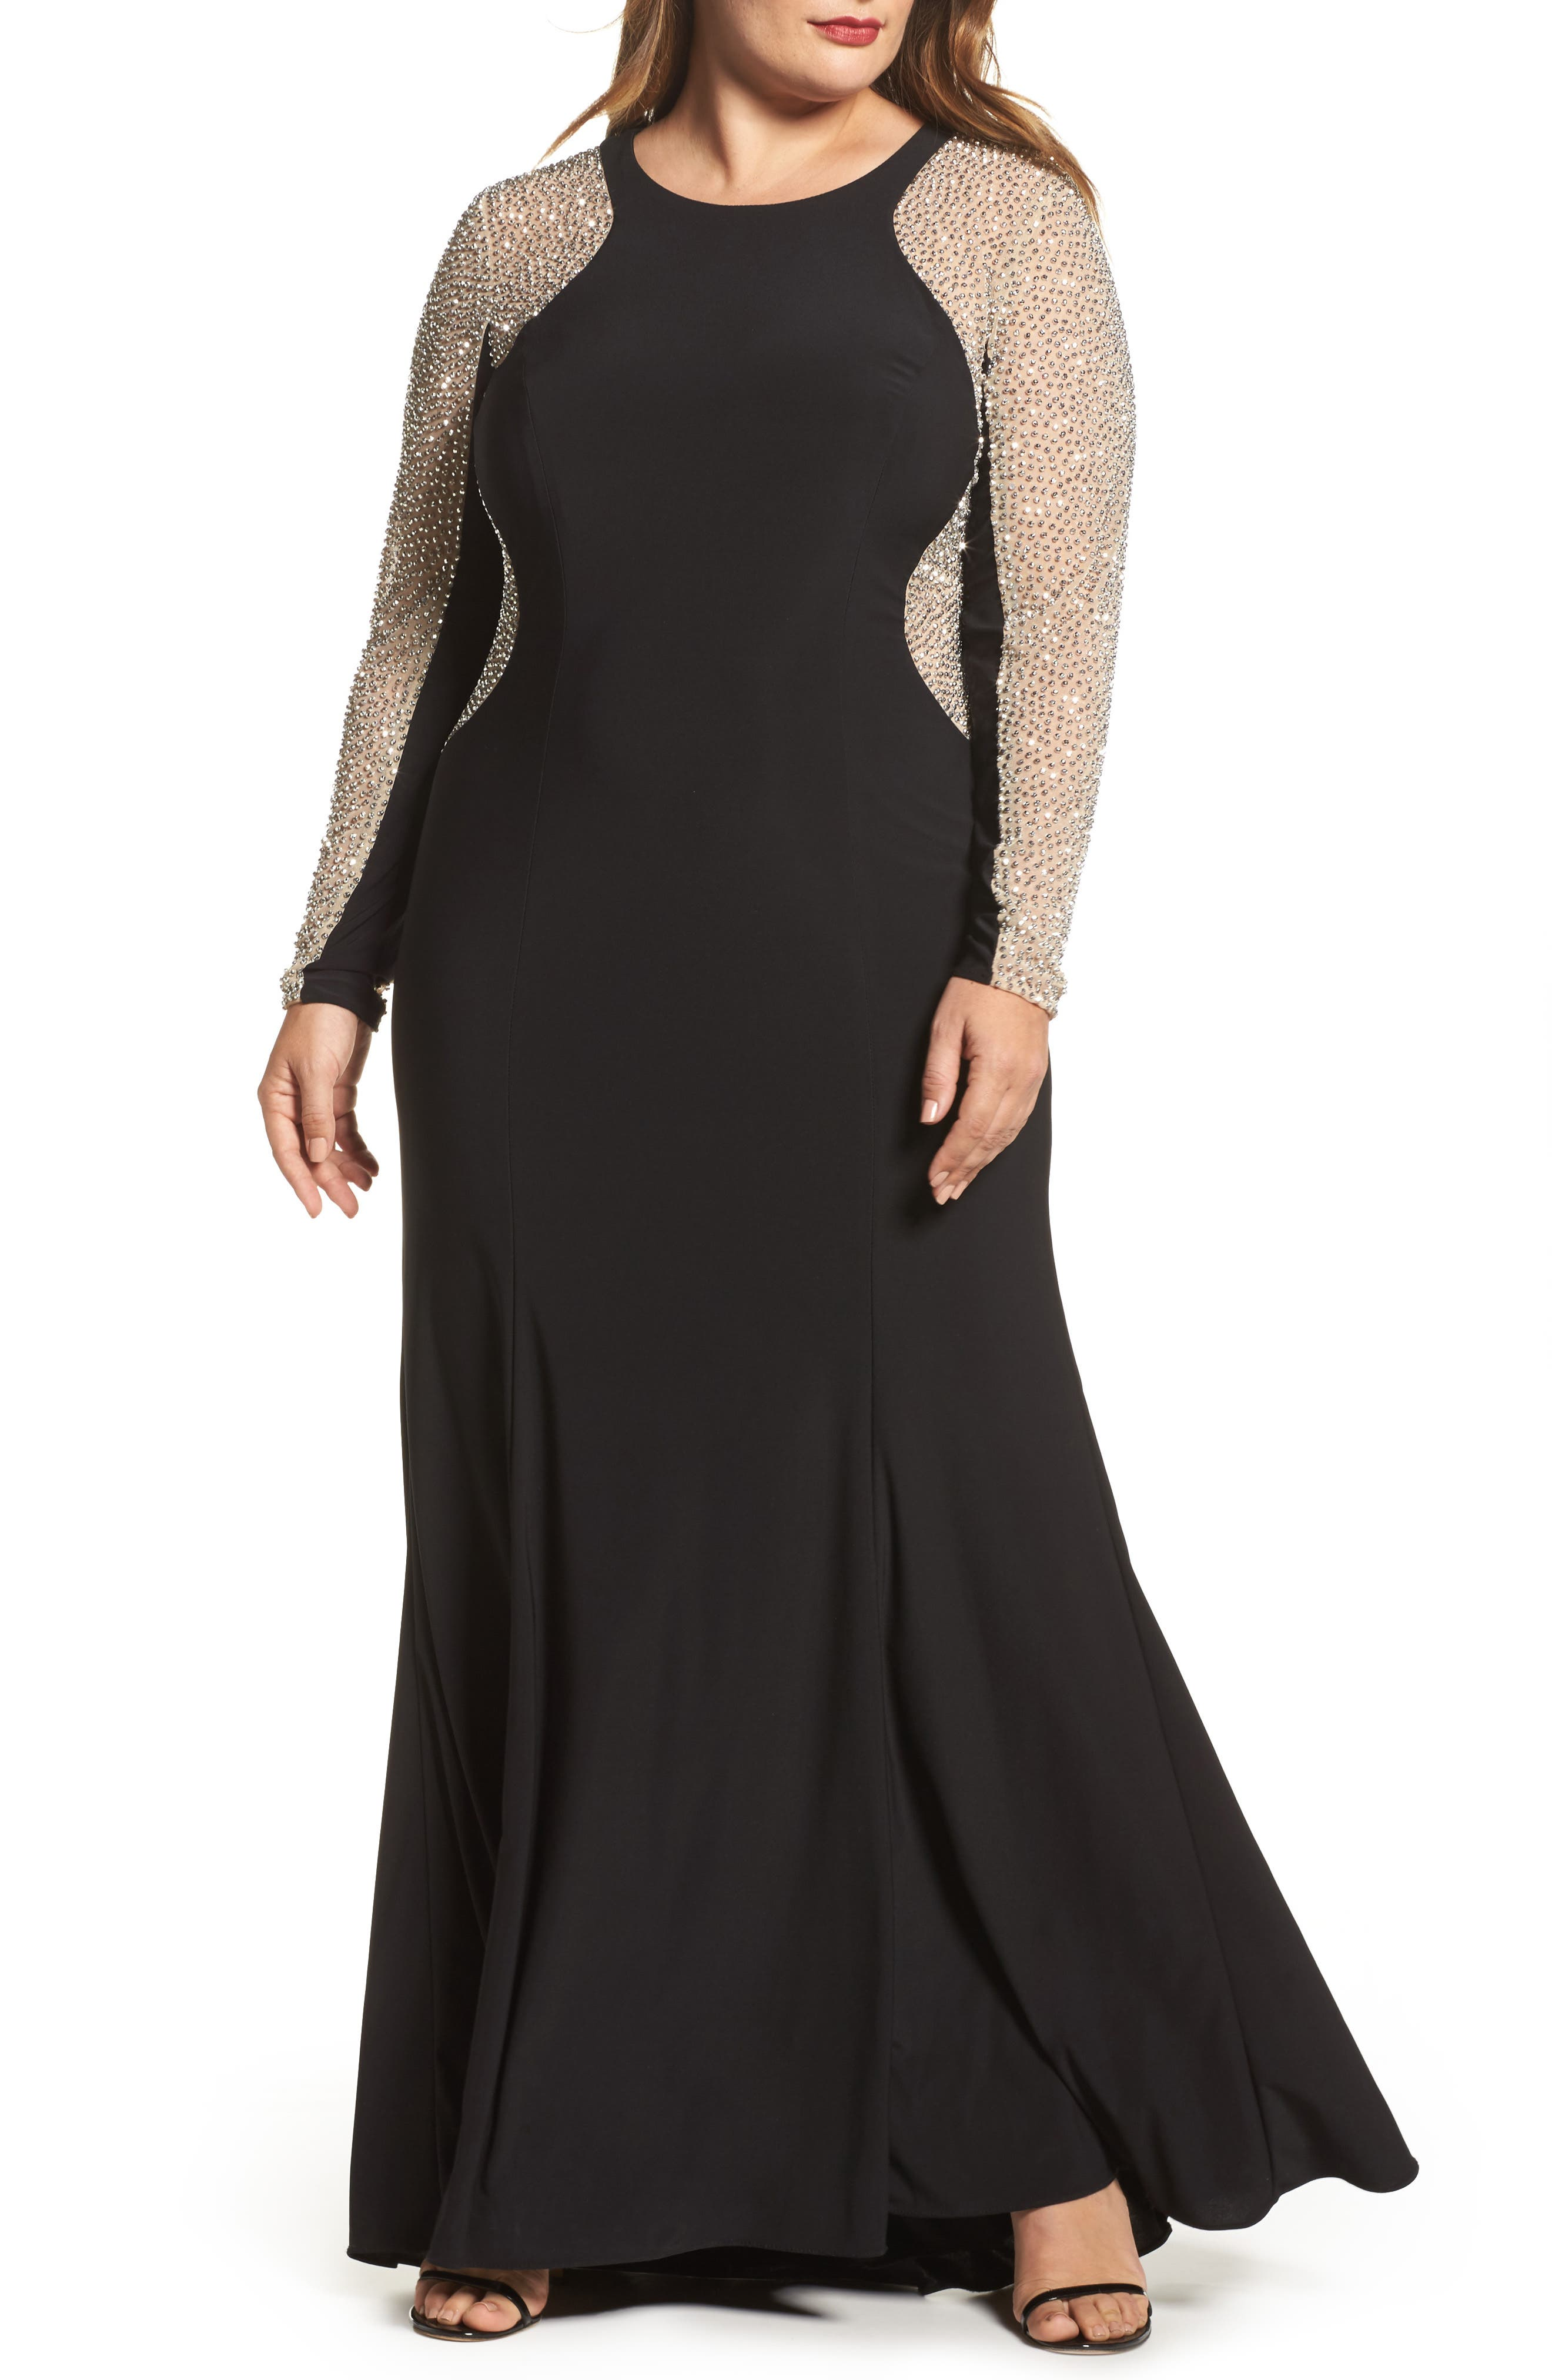 XSCAPE, Embellished Jersey Gown, Main thumbnail 1, color, BLACK/ NUDE/ SILVER